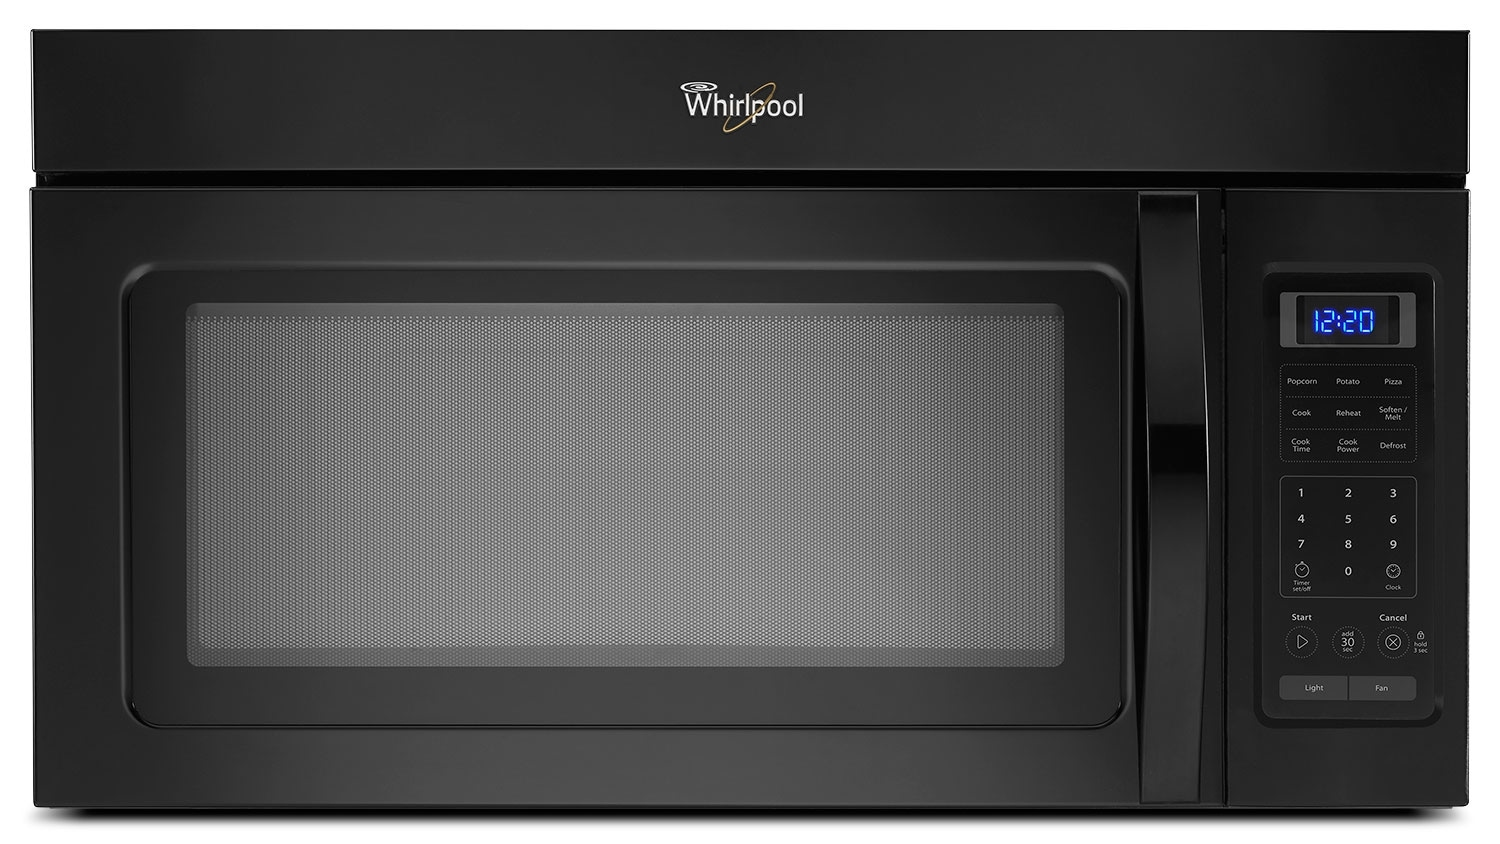 Cooking Products - Whirlpool Black Over-the-Range Microwave (1.7 Cu. Ft.) - YWMH31017AB